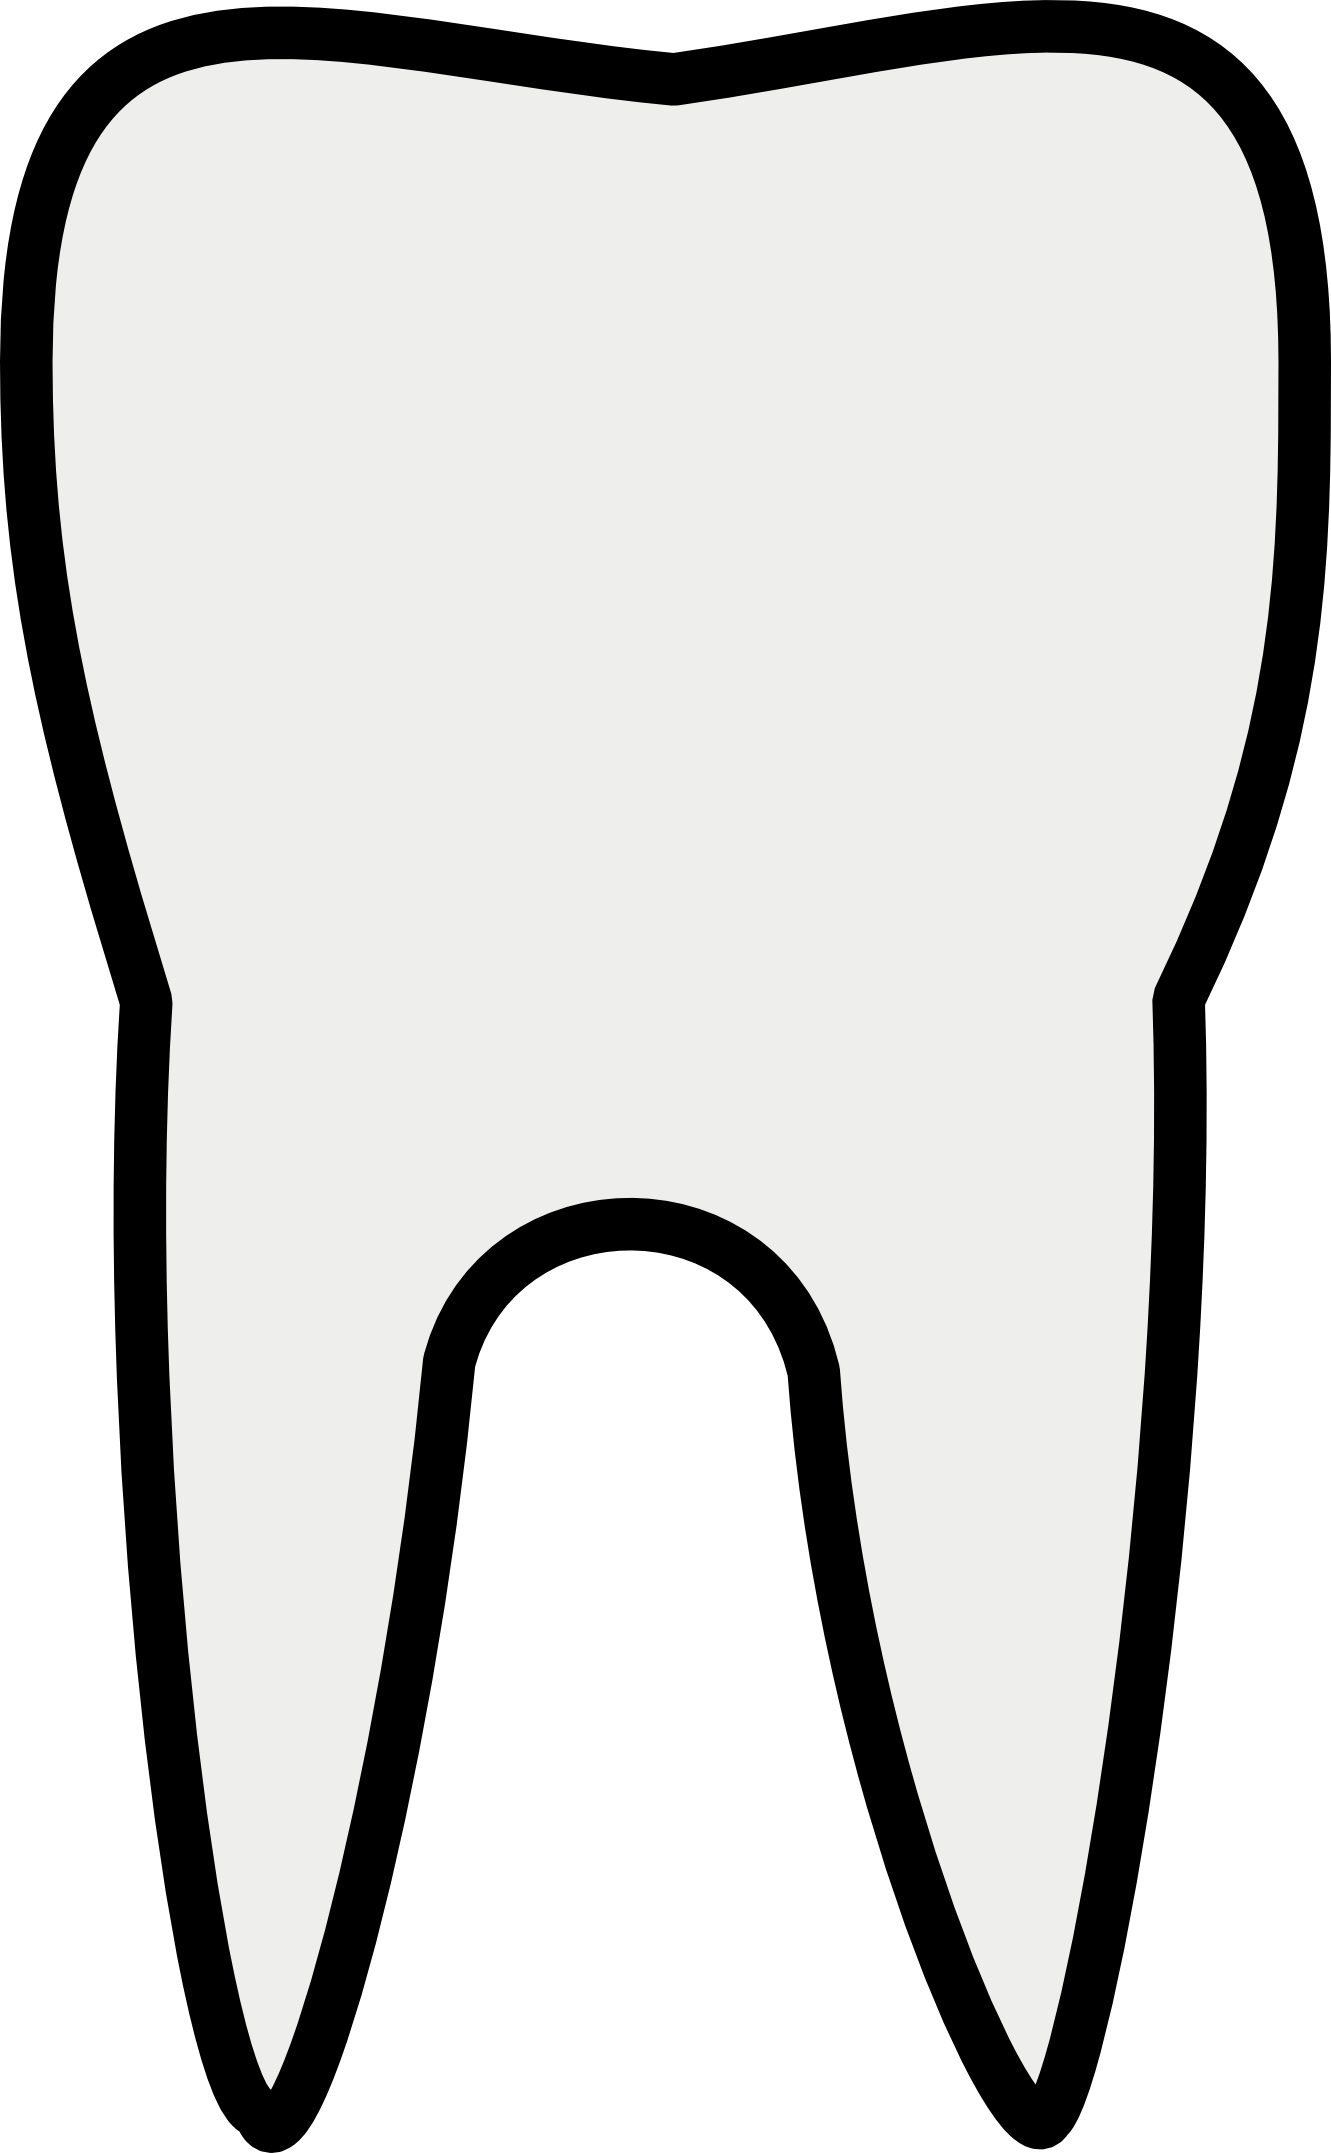 Dog teeth clipart graphic free Free Dog Teeth Cliparts, Download Free Clip Art, Free Clip Art on ... graphic free